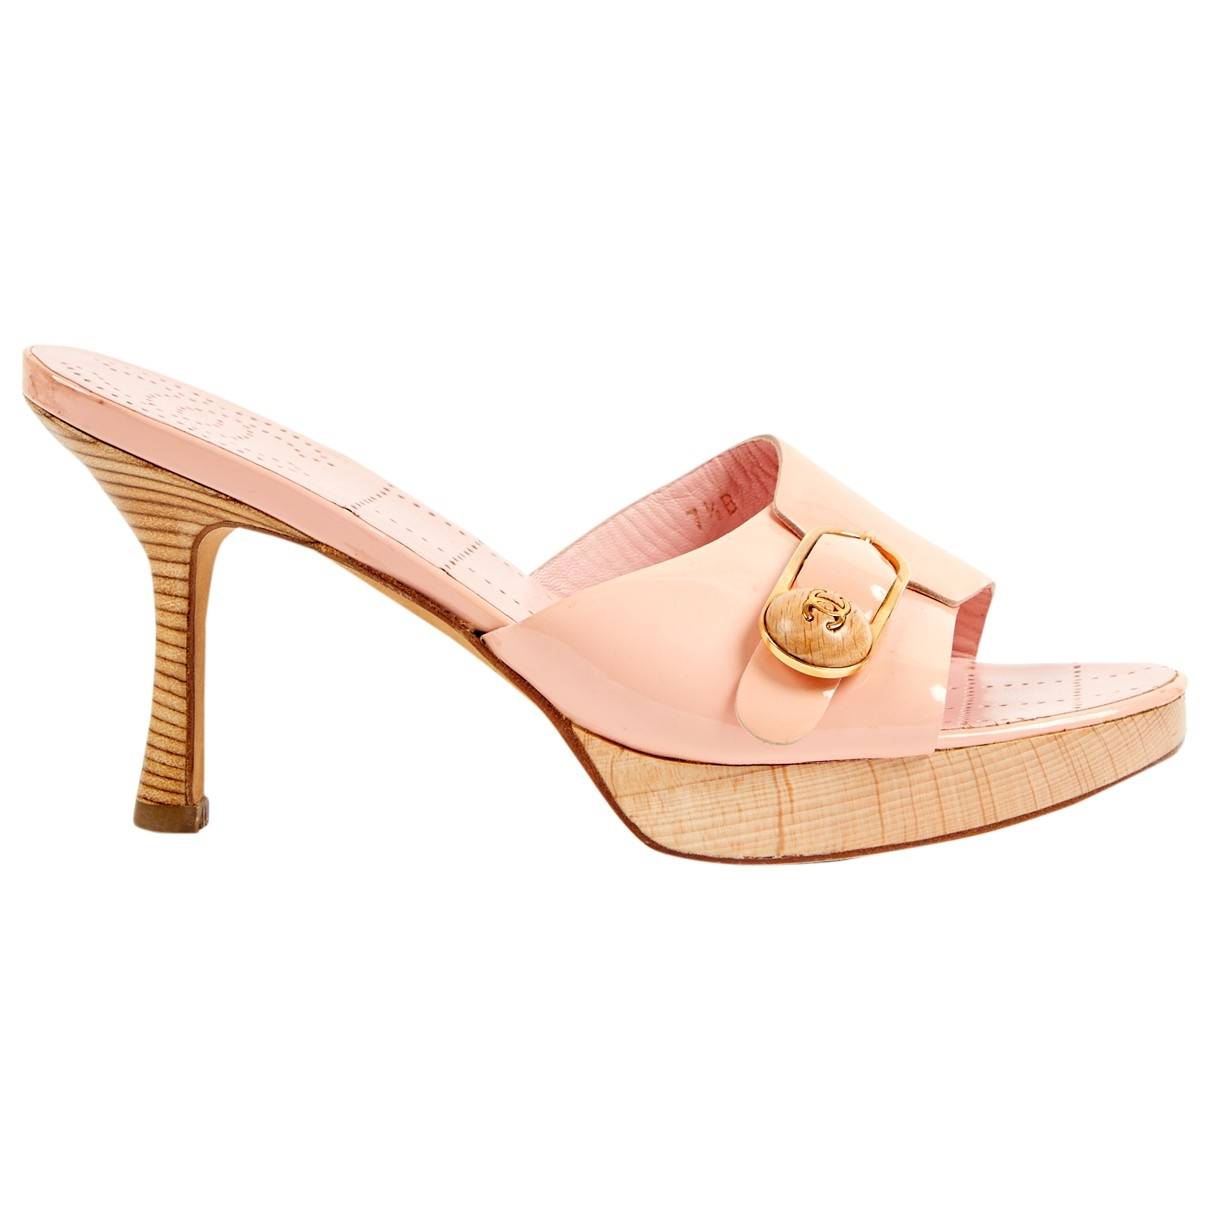 Chanel \N Pink Patent leather Heels for Women 37.5 EU